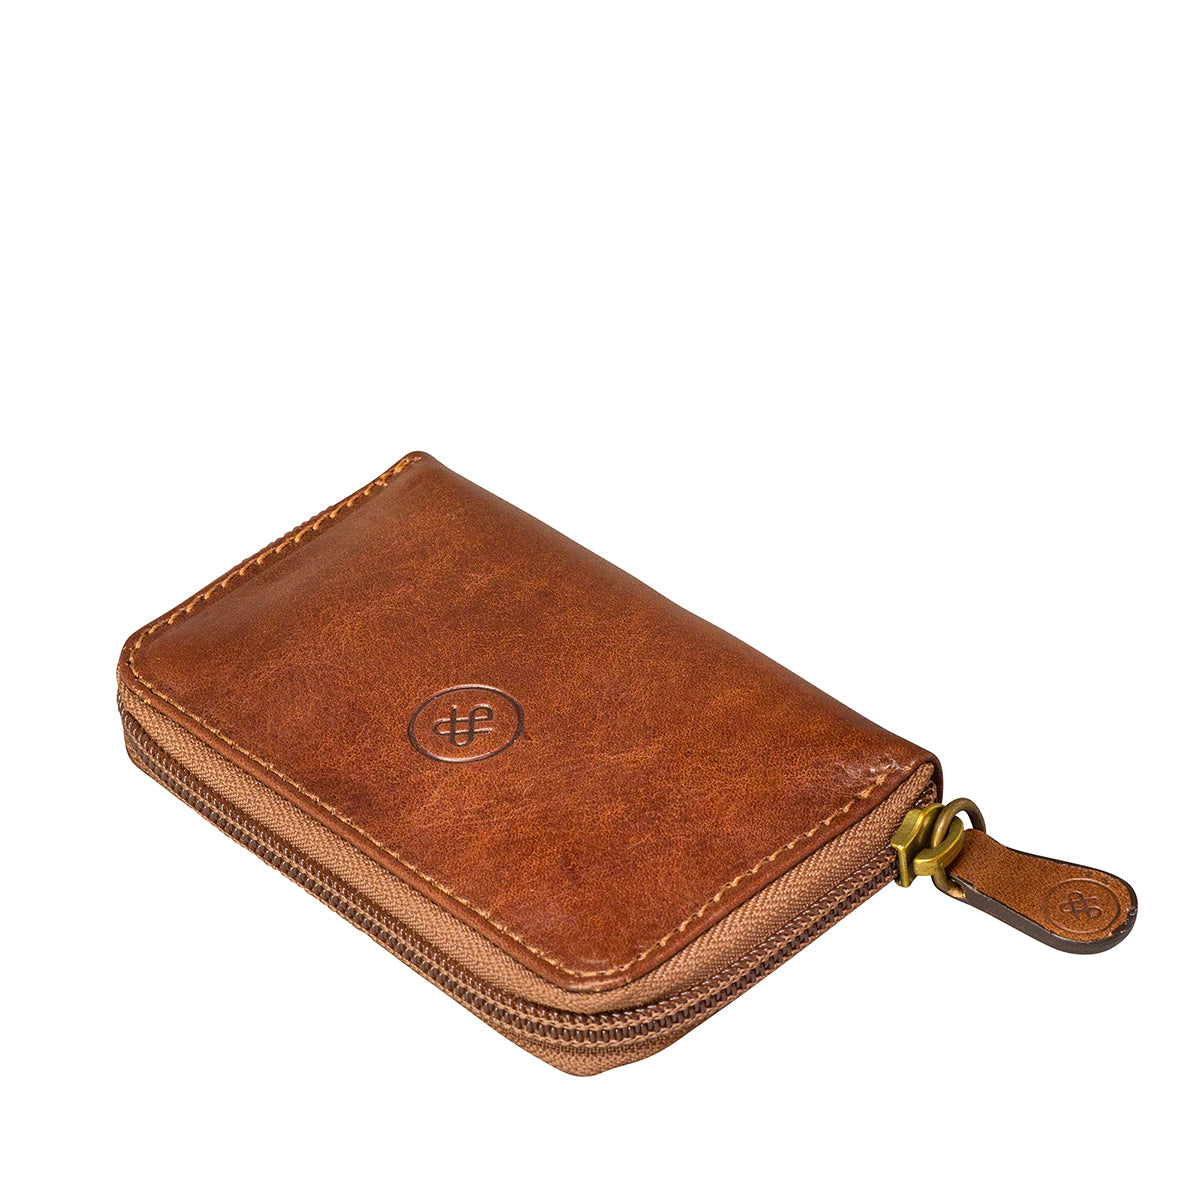 Image 3 of the 'Vinci' Chestnut Veg-Tanned Leather Key Wallet